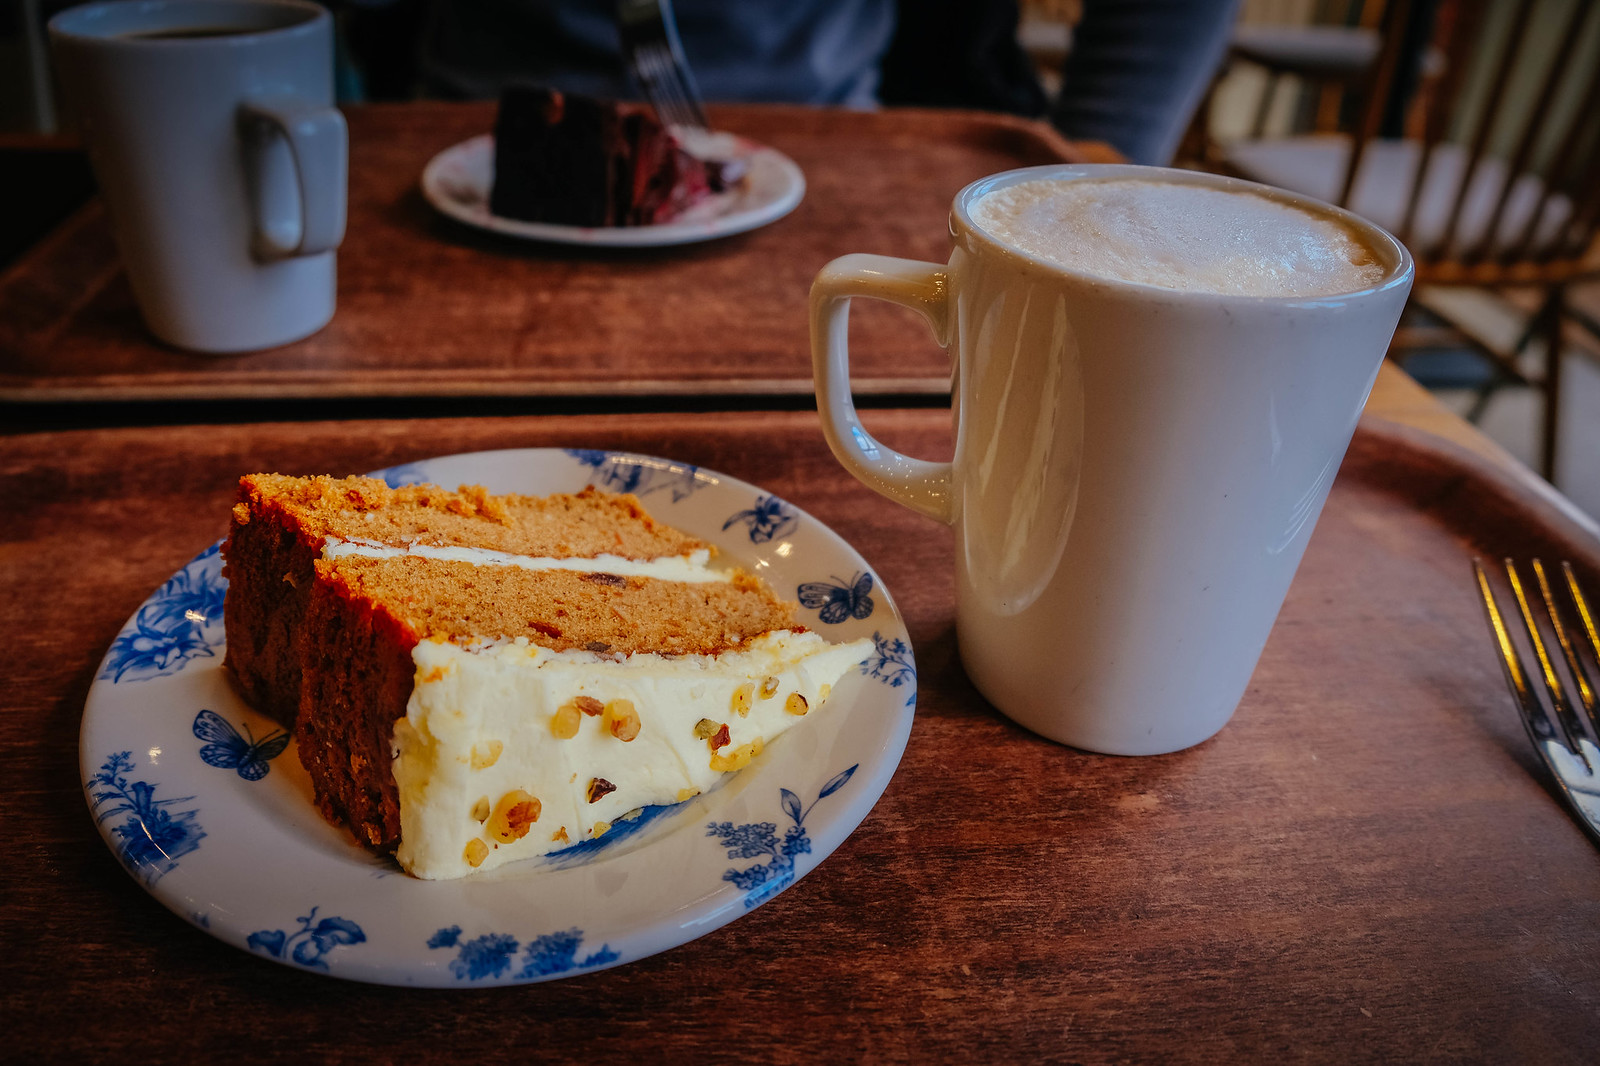 Decaf latte and carrot cake!